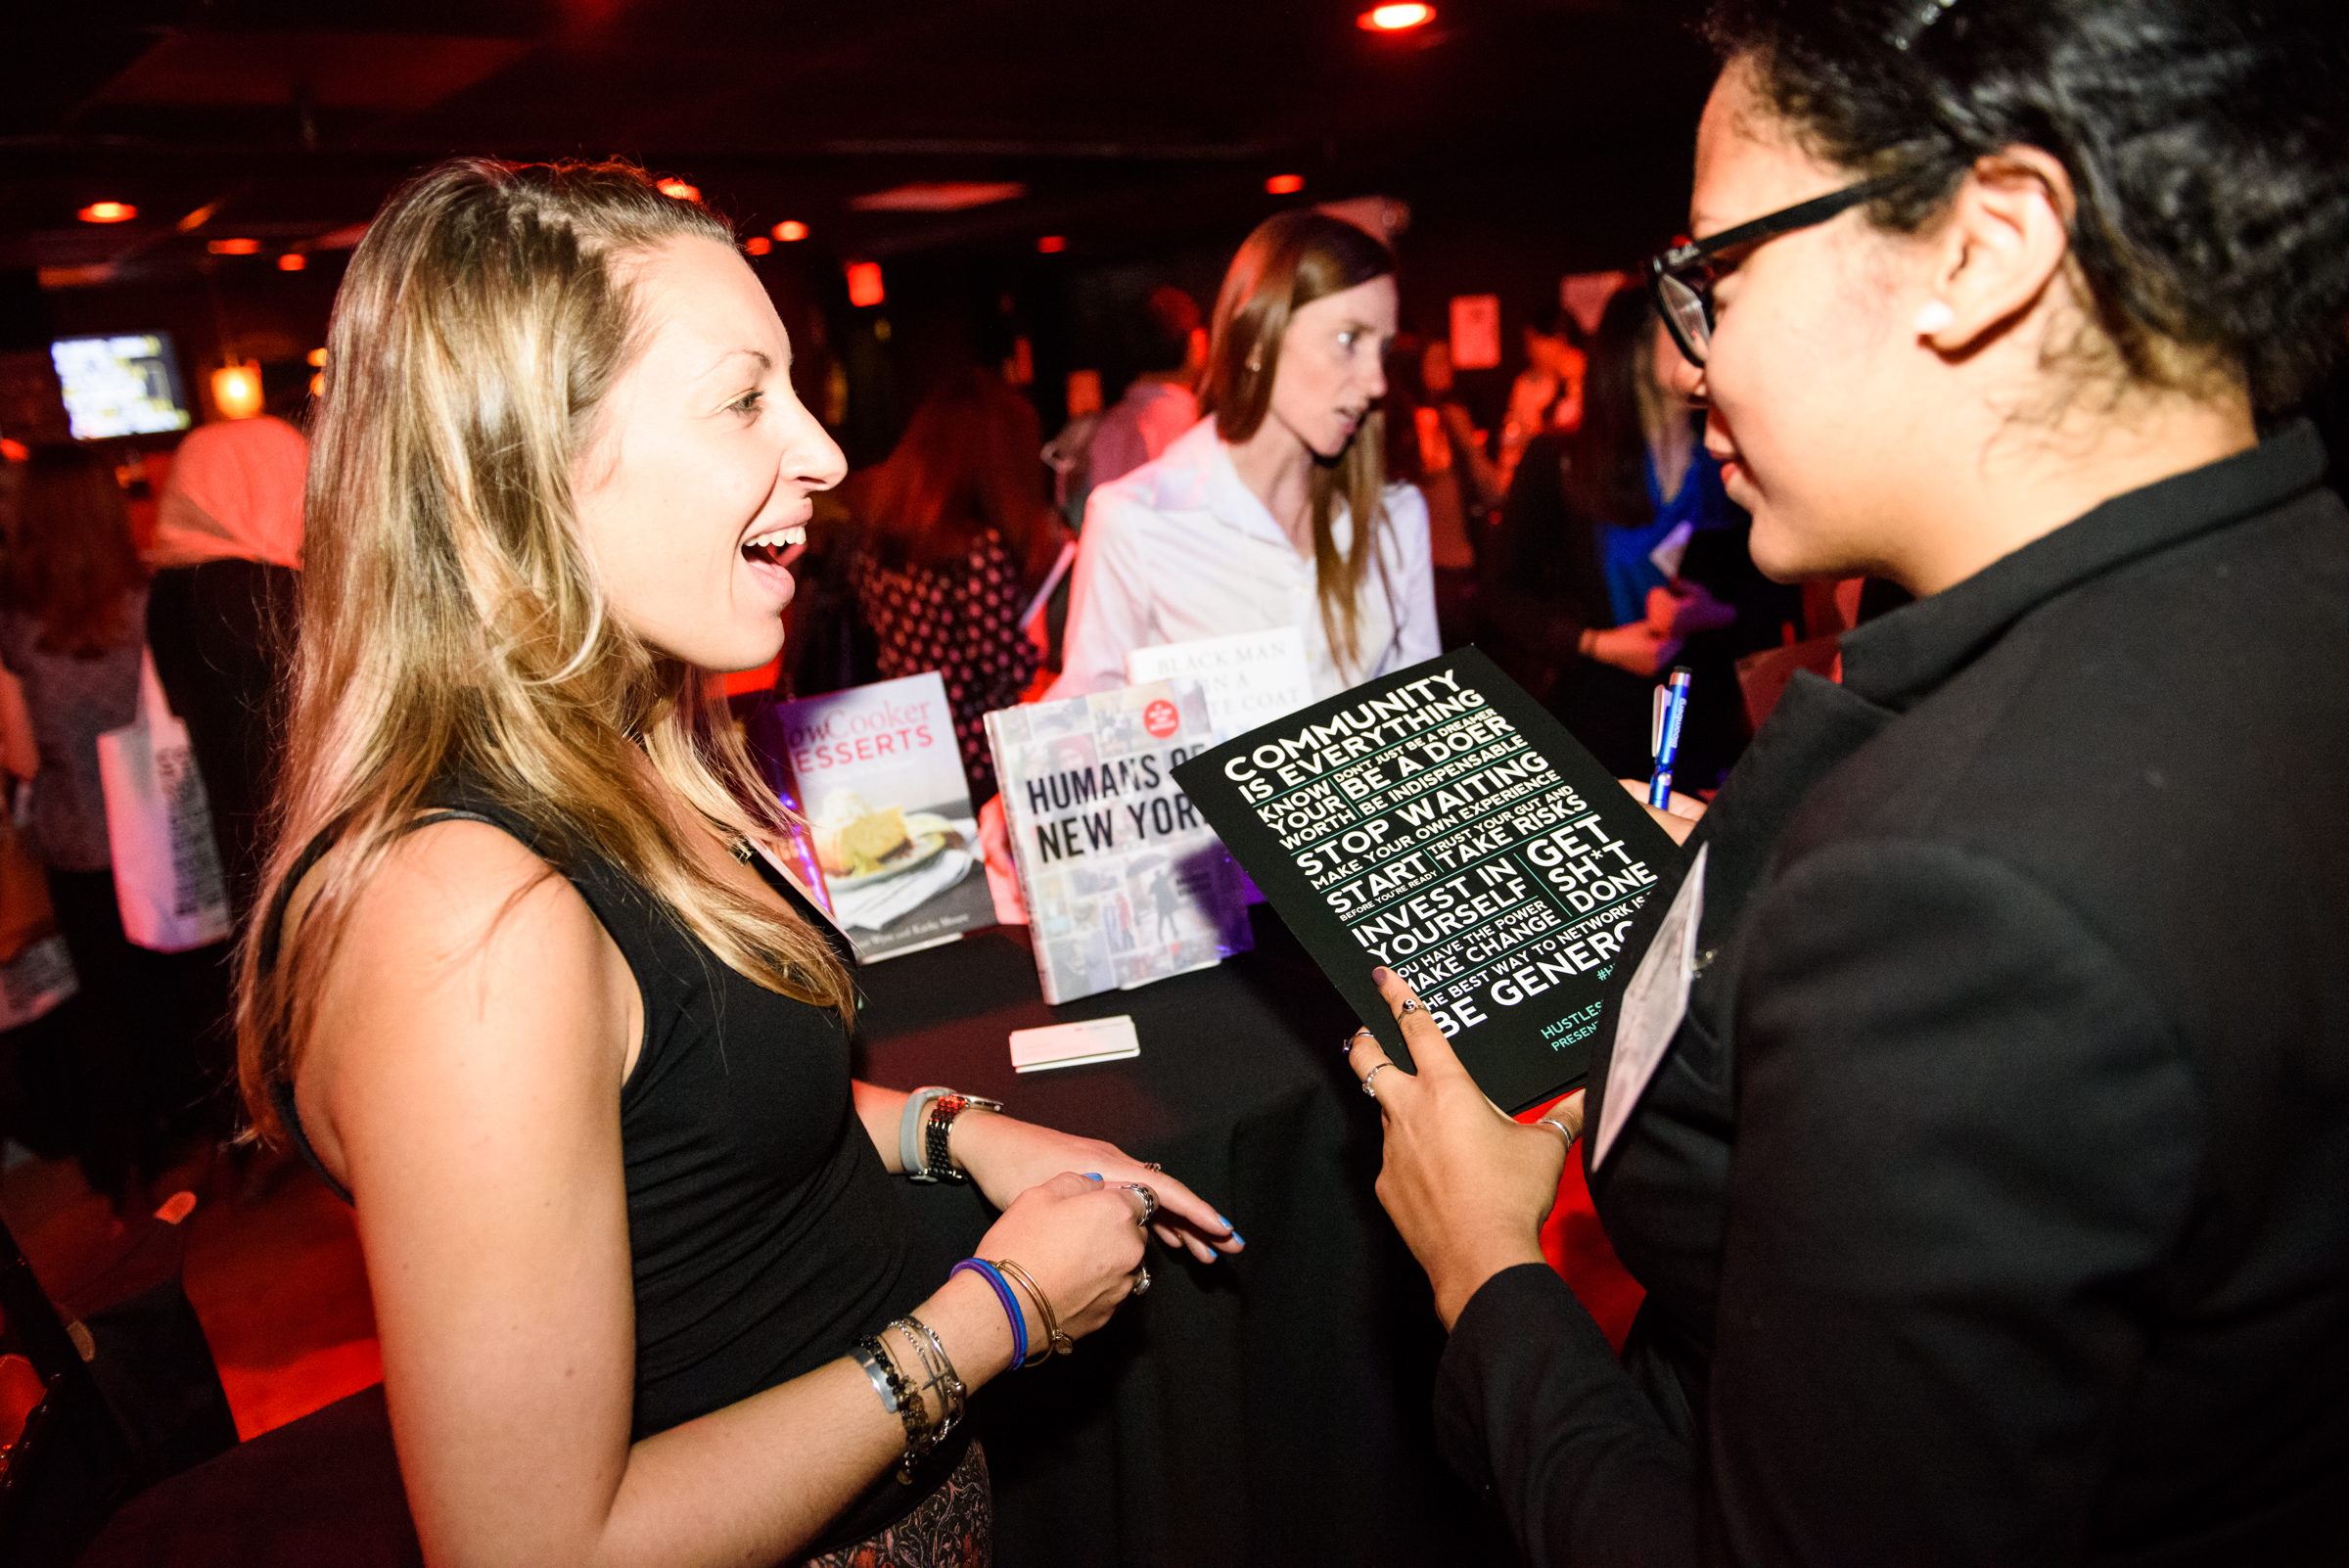 Hustle Summit: An Epic Career Fair & Networking Event | NYC